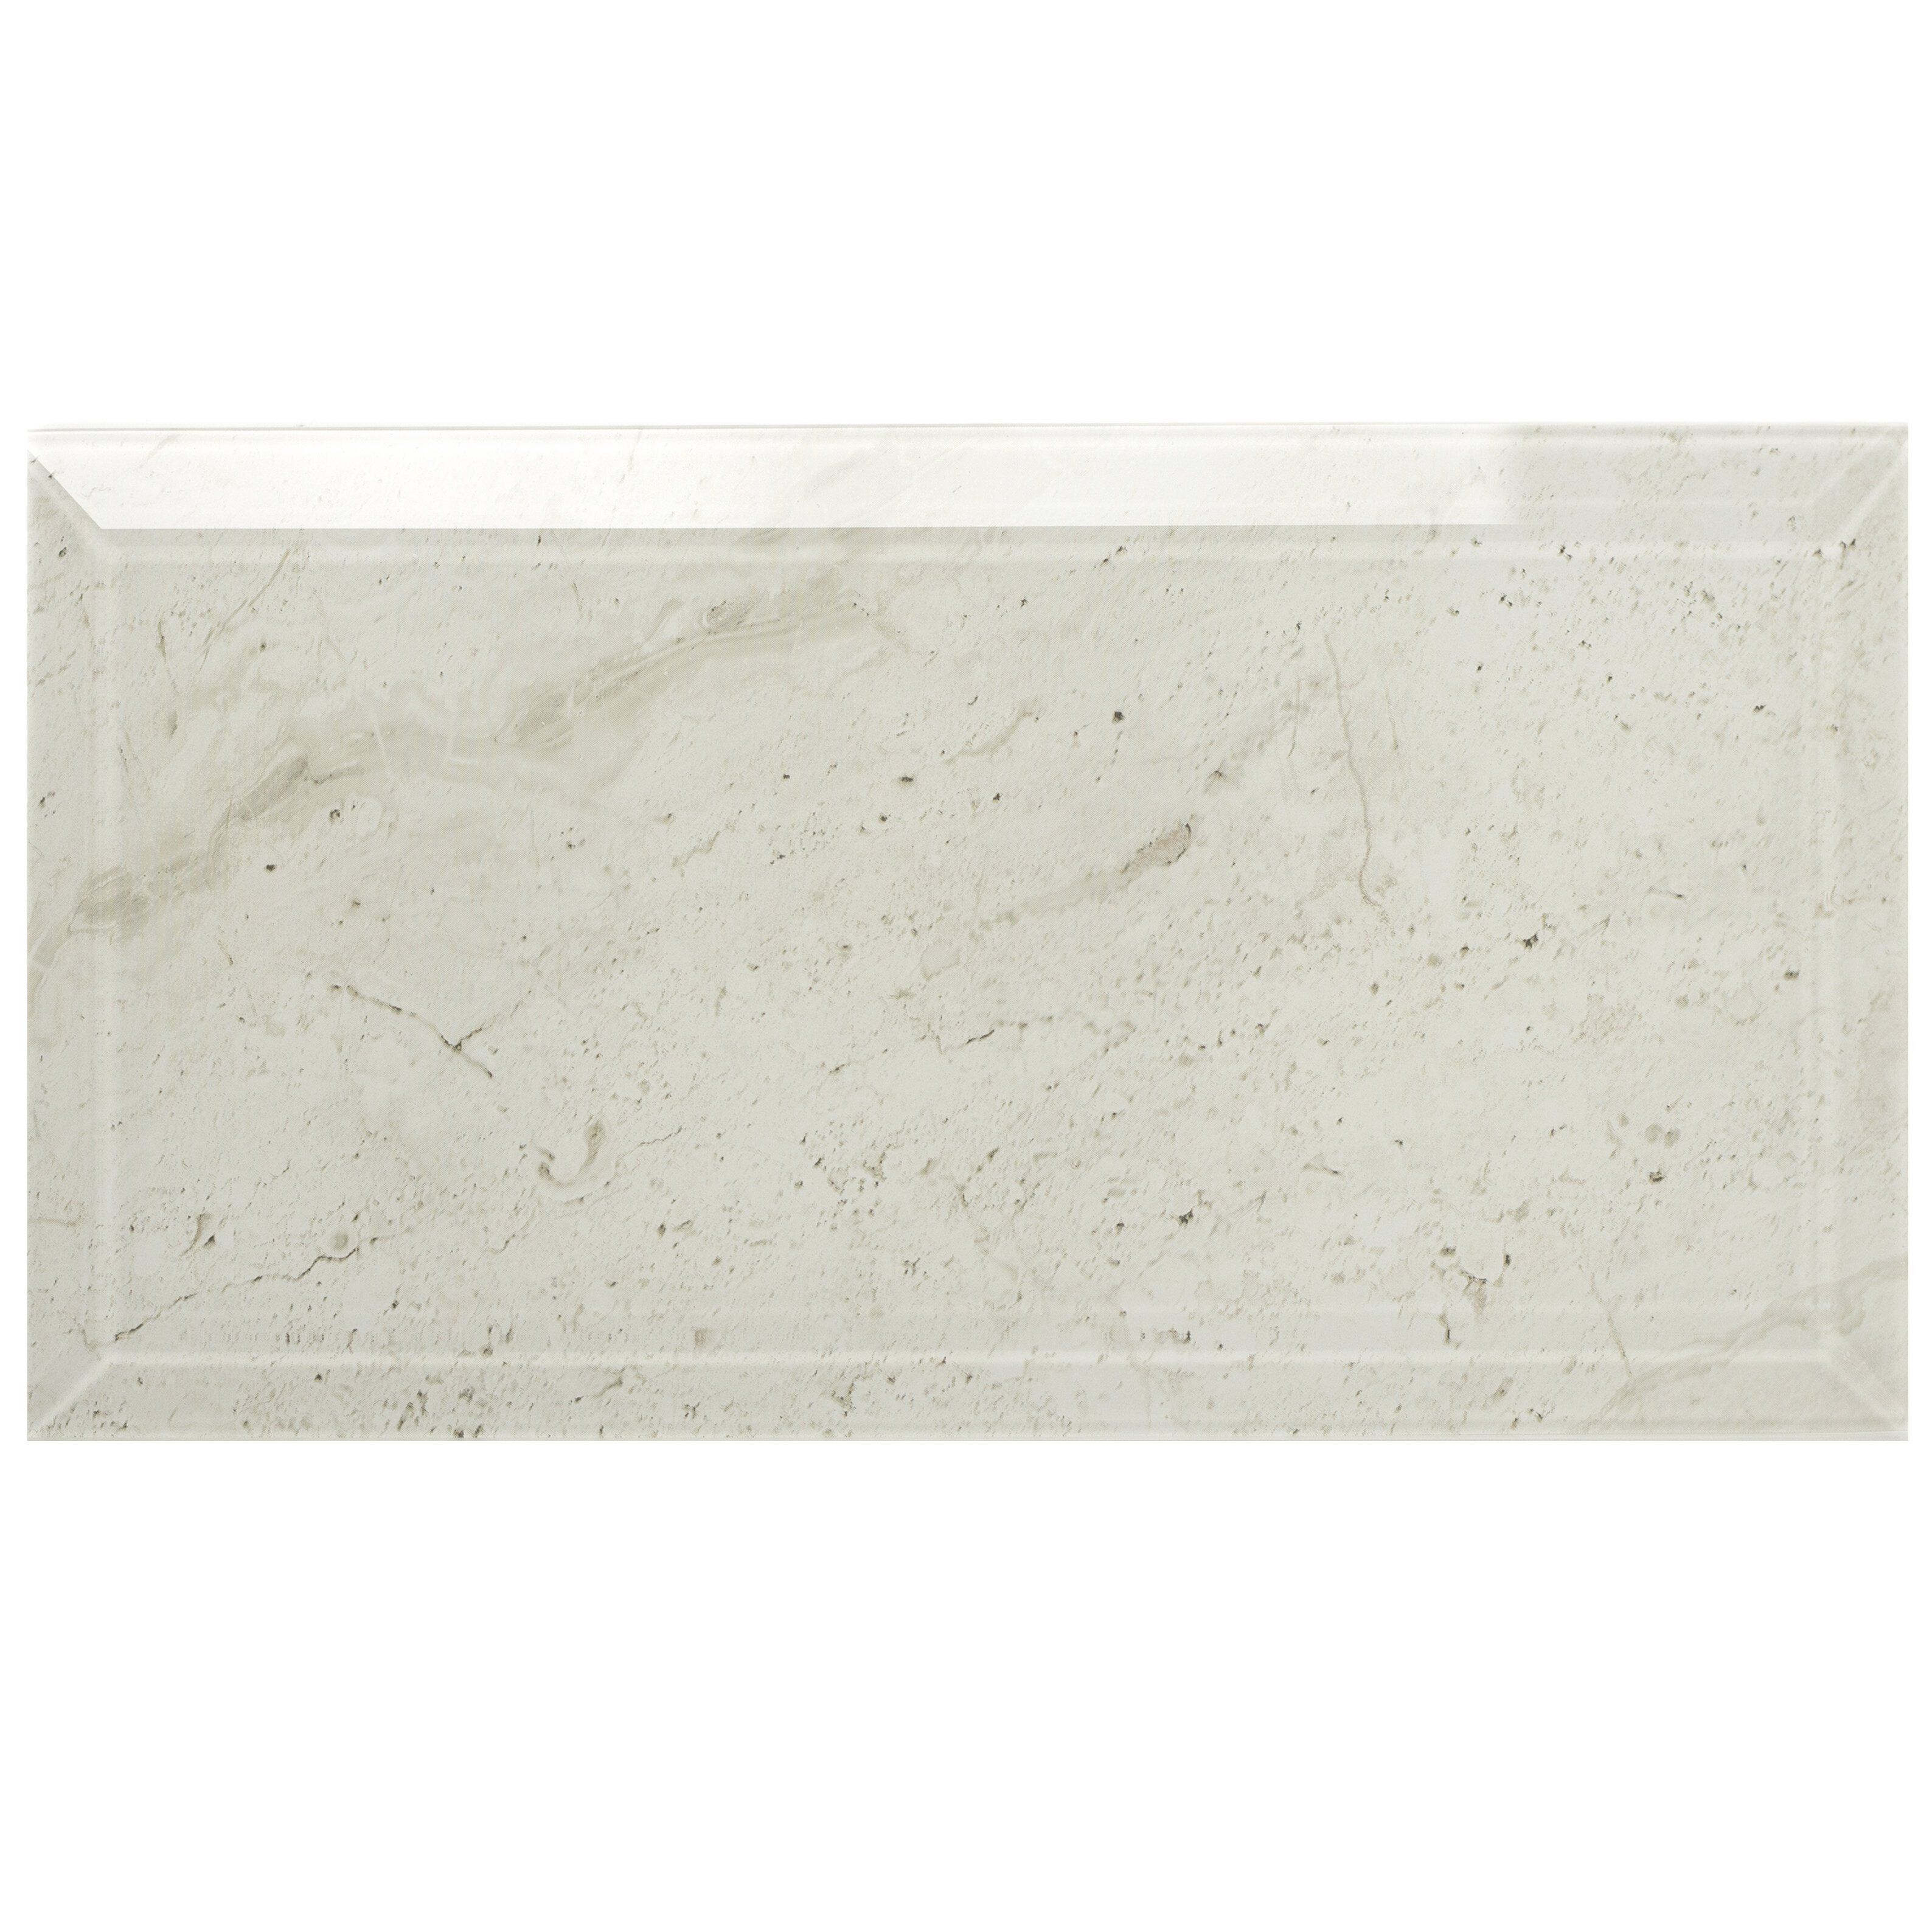 Abolos Nature 4 X 8 Beveled Gl Subway Tile In Crema Marfil Wayfair